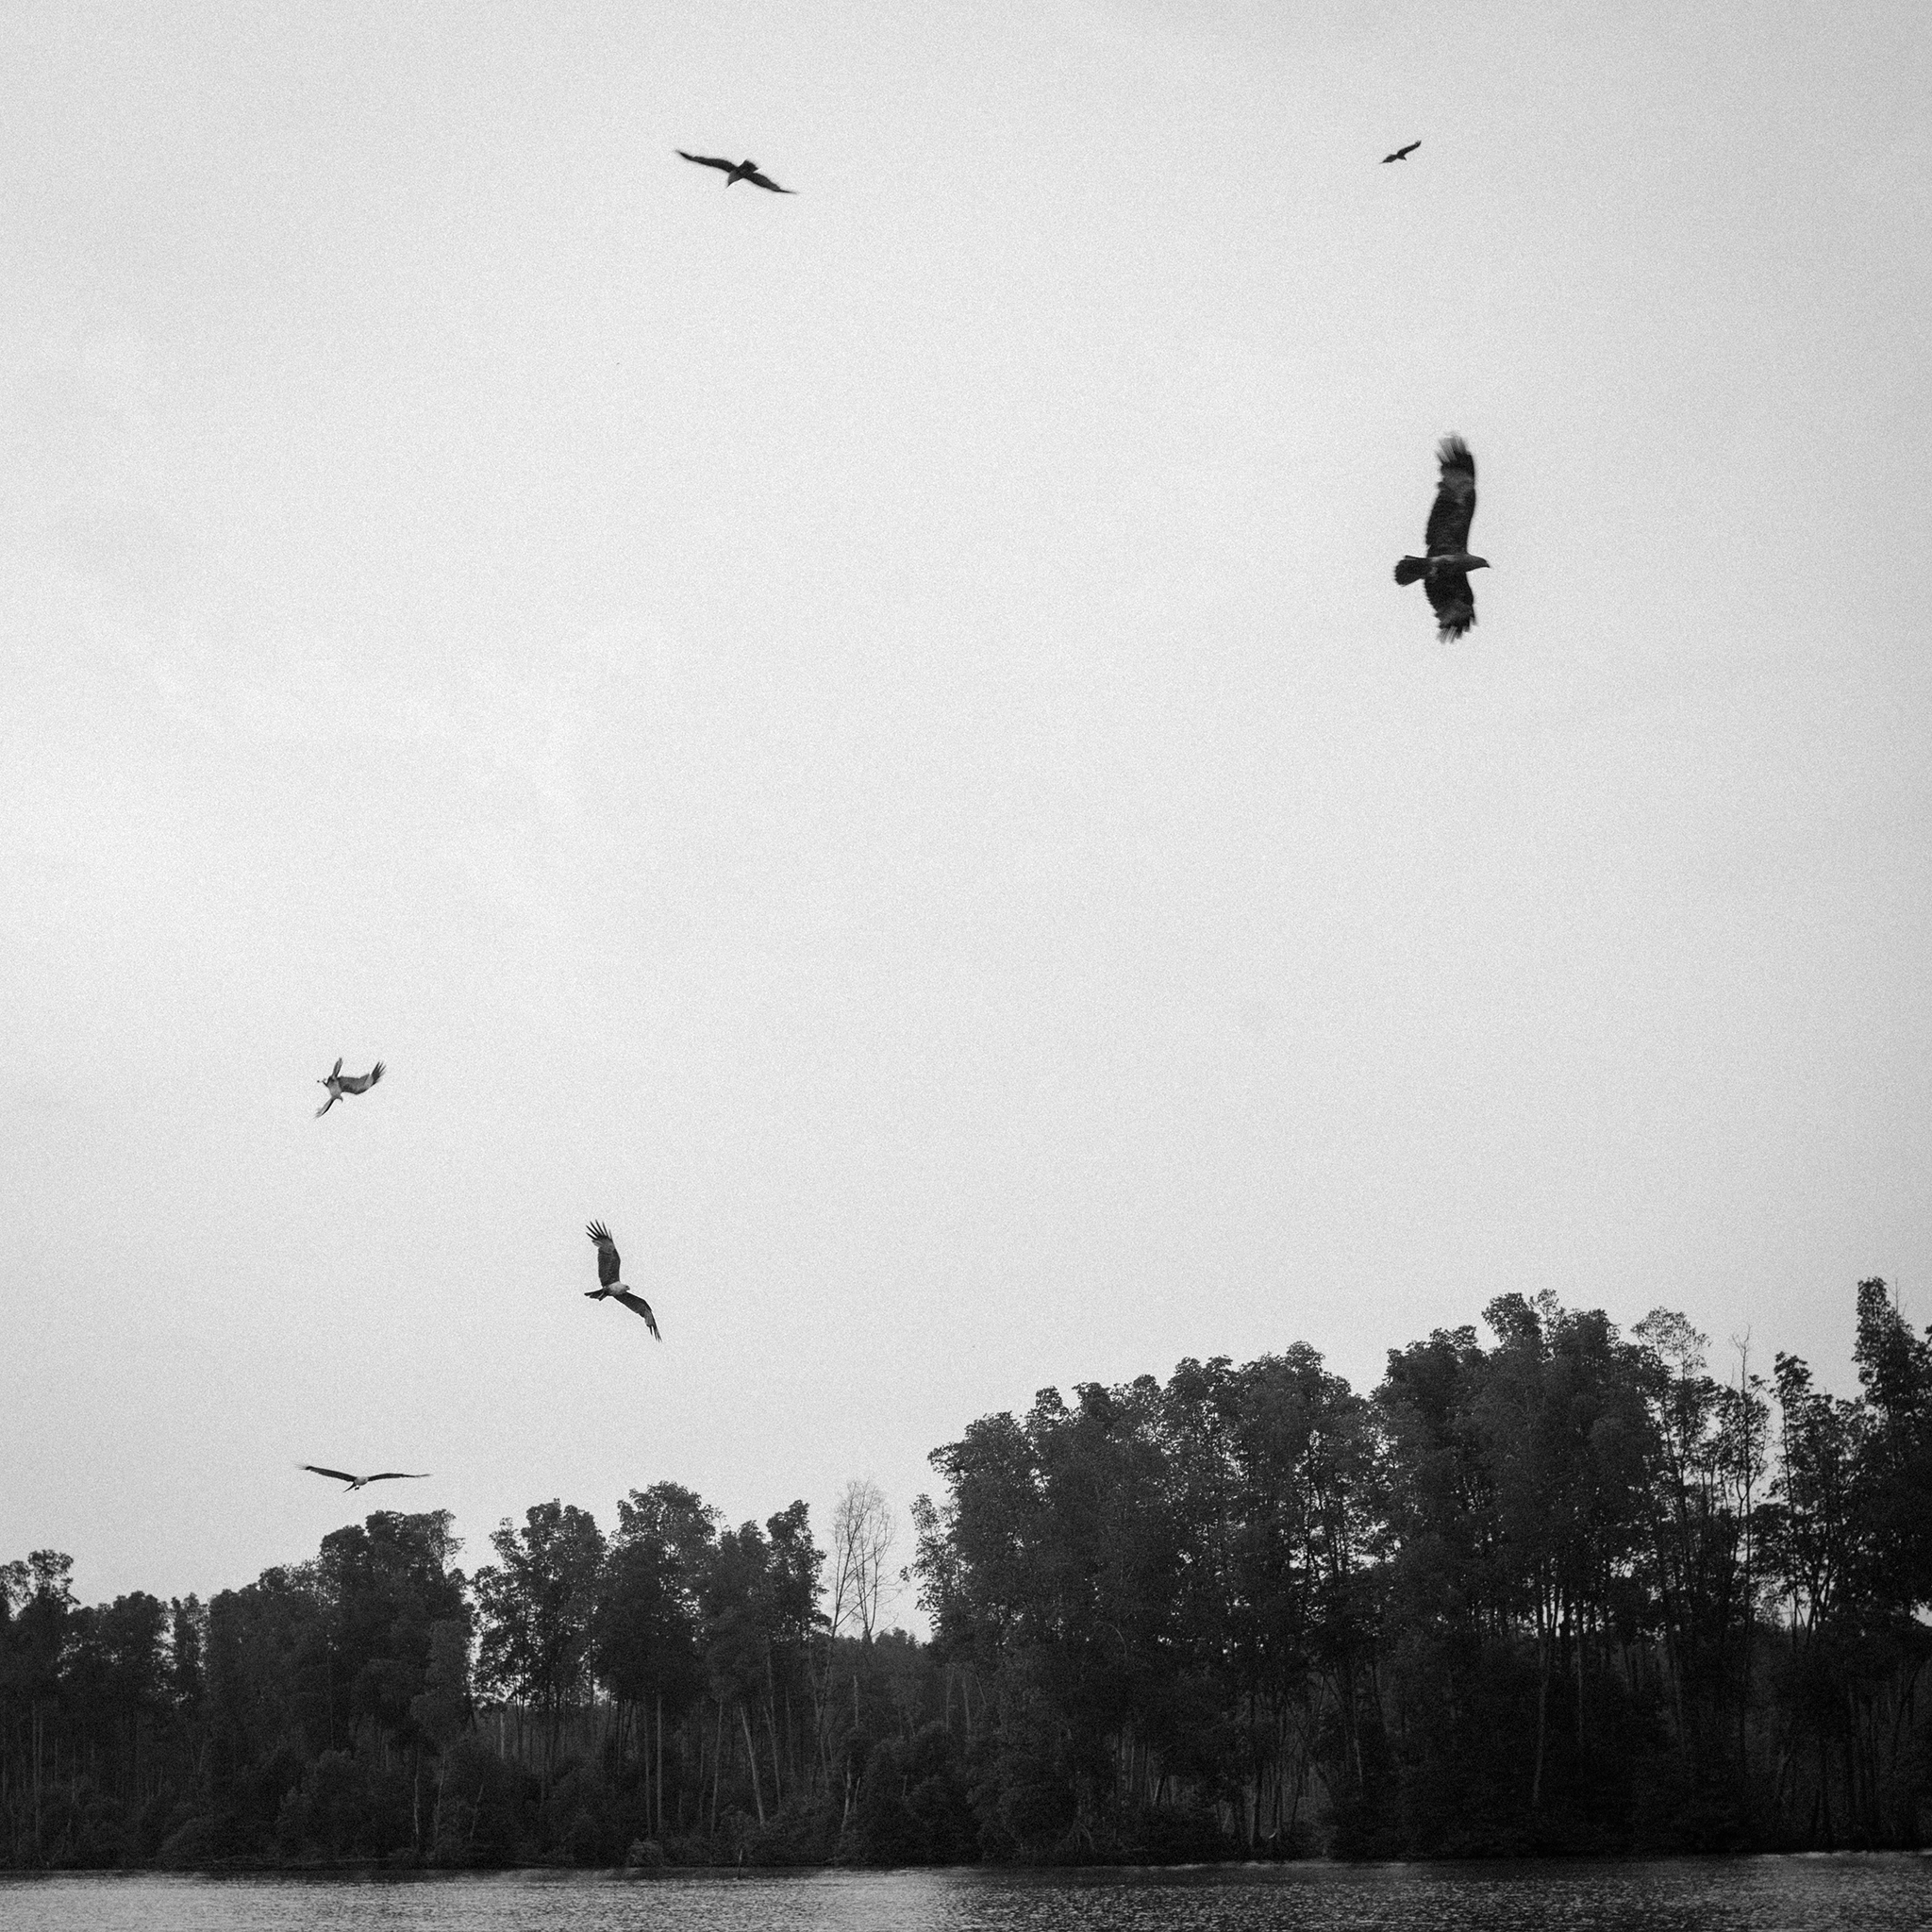 Semi-wild kites hovering above, waiting for food.